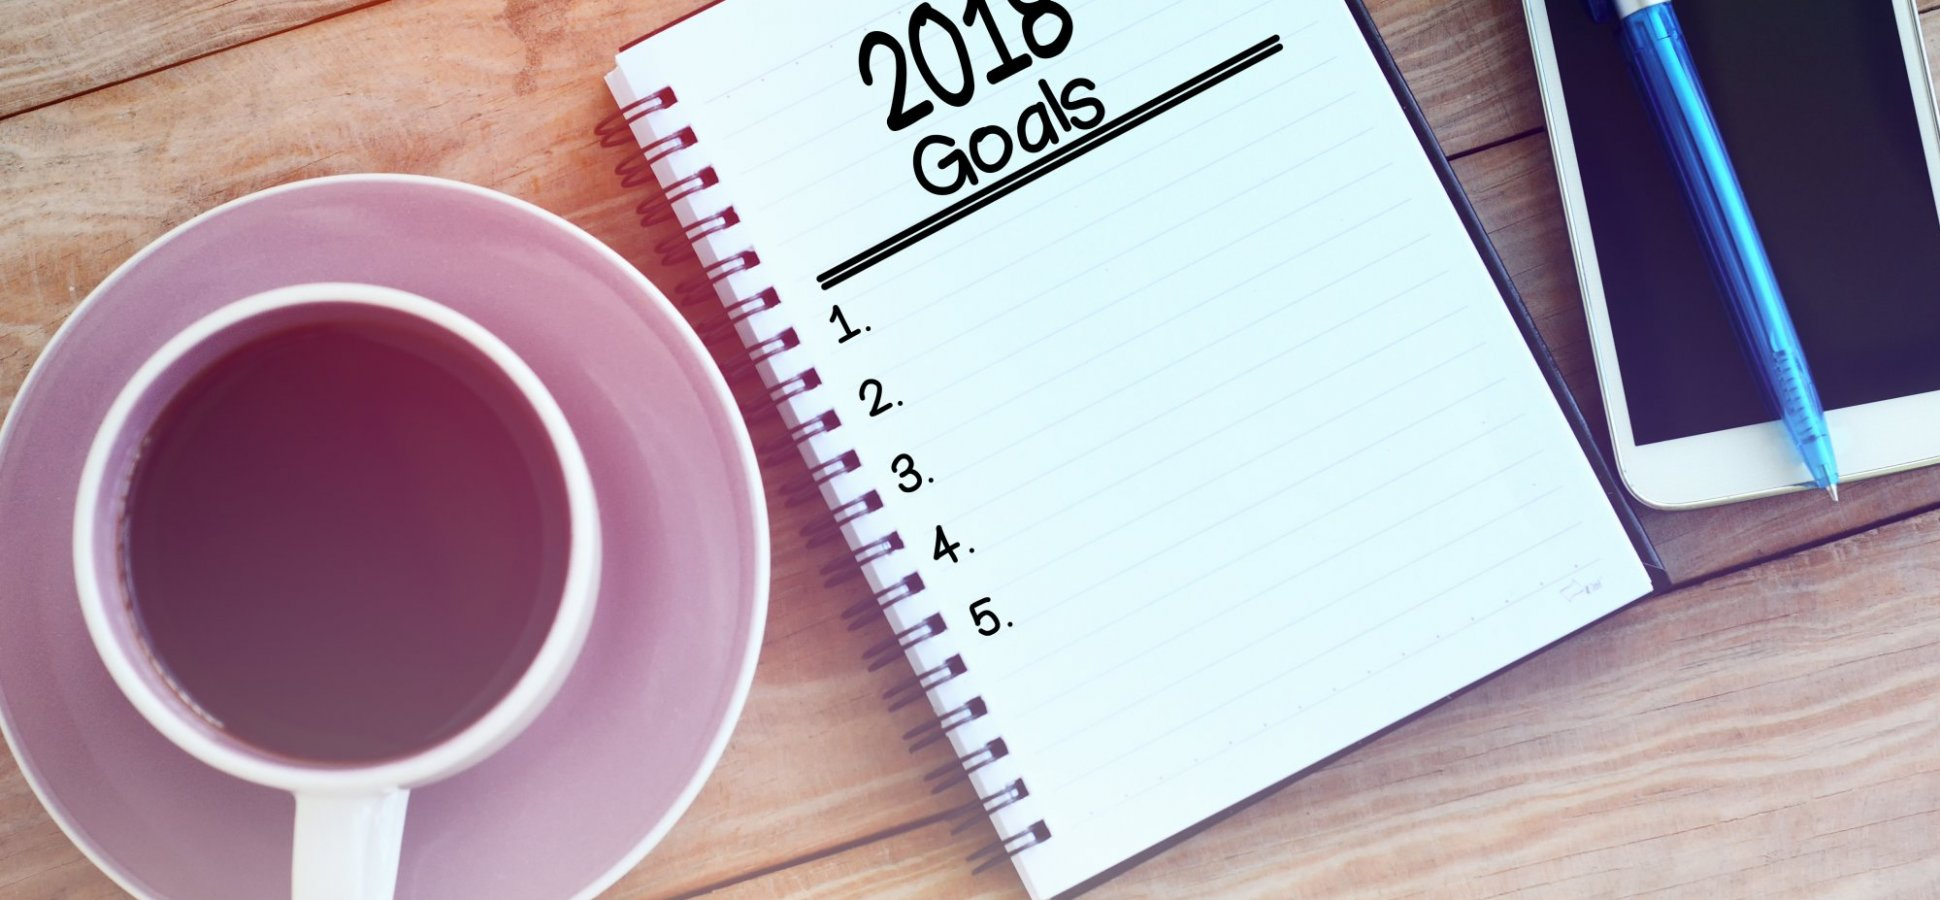 16 Facts About Content Marketing That Will Help You Succeed in the New Year